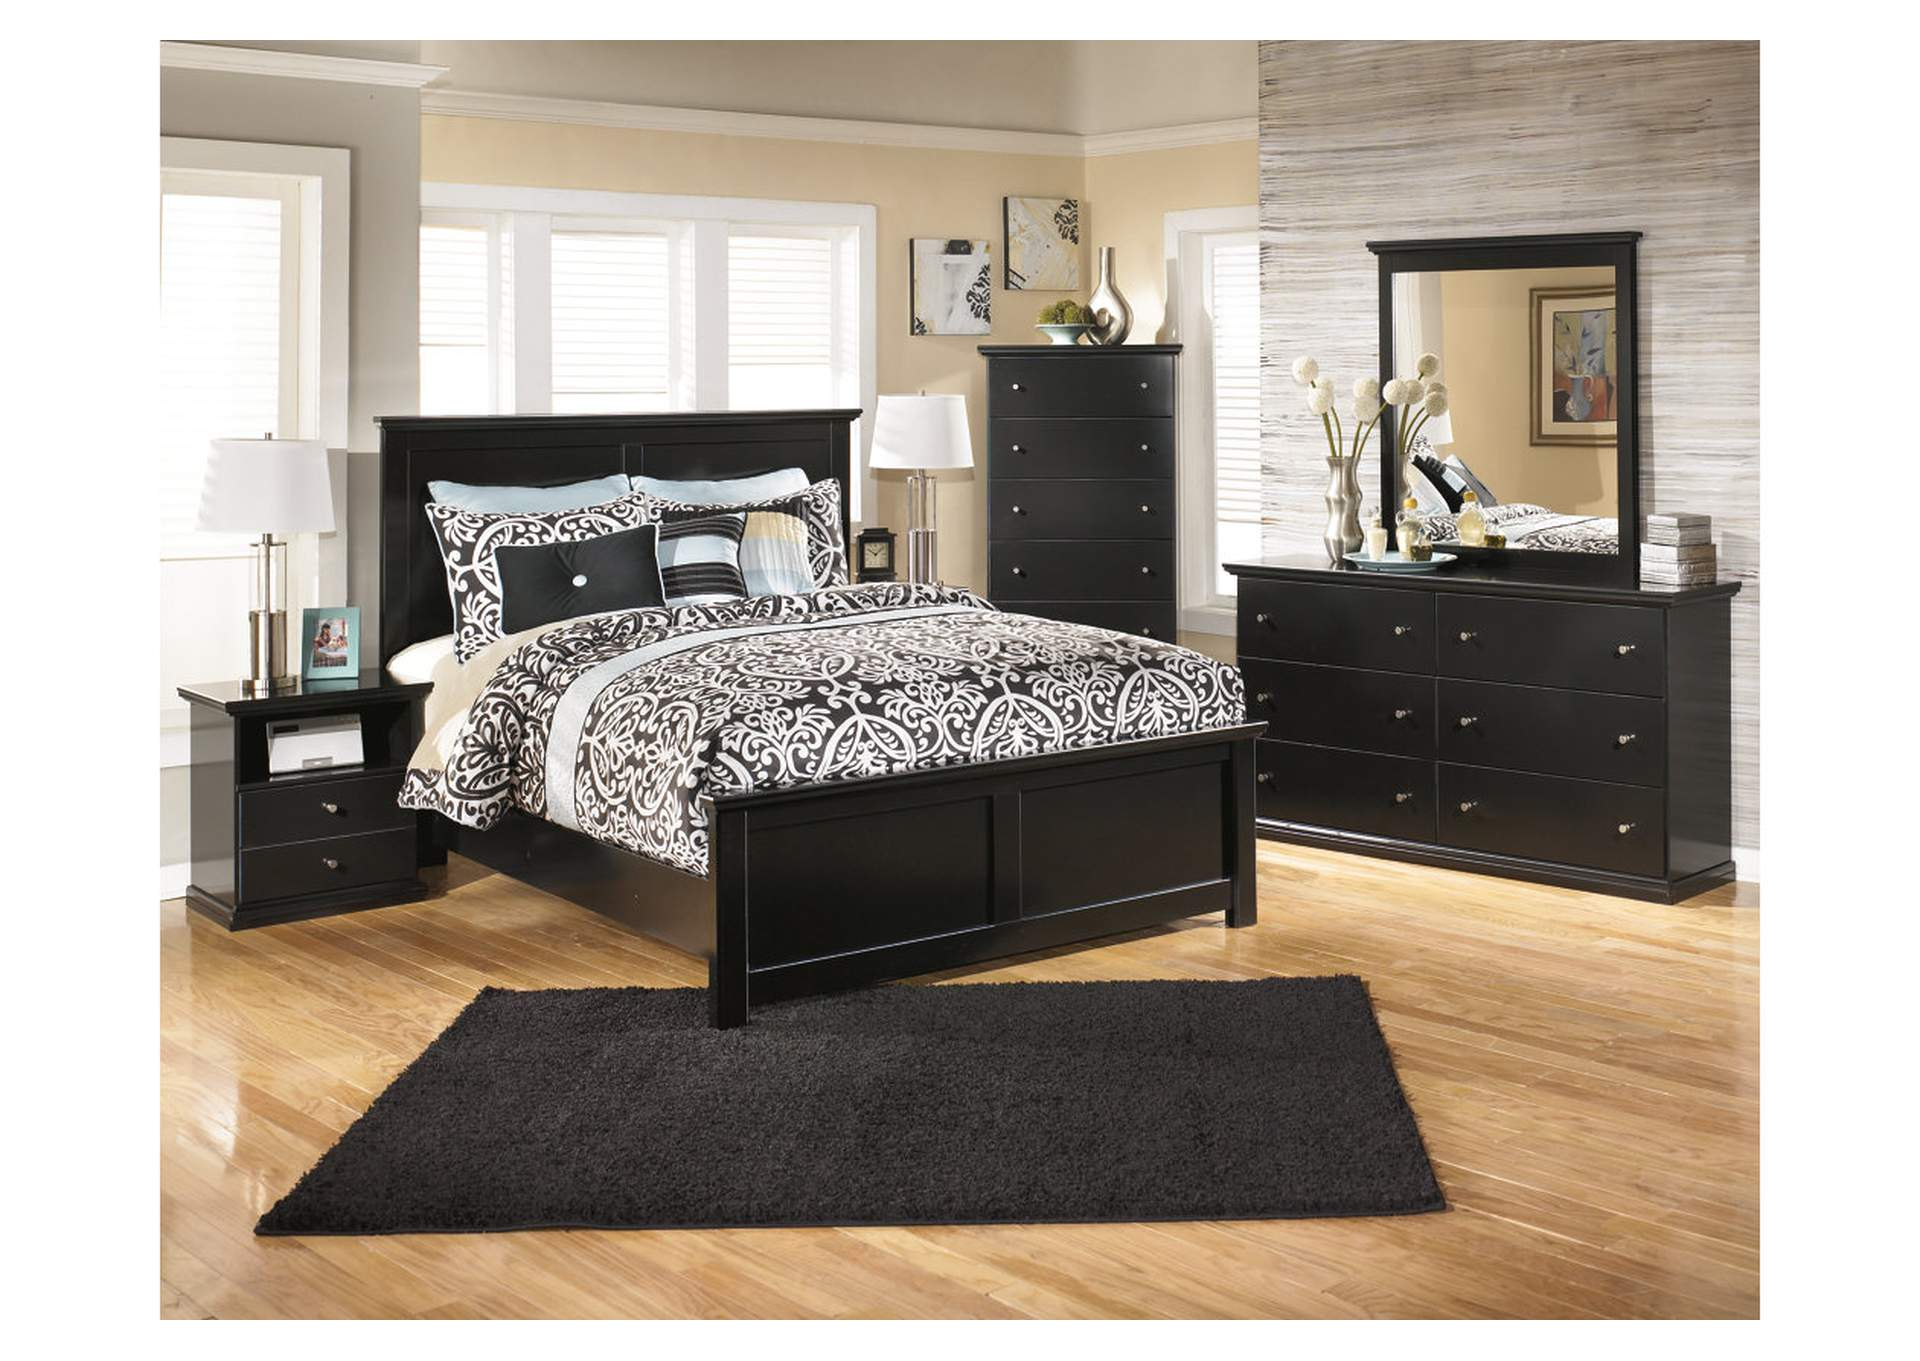 Maribel Black Queen Panel Bed w/Dresser & Mirror,Signature Design By Ashley